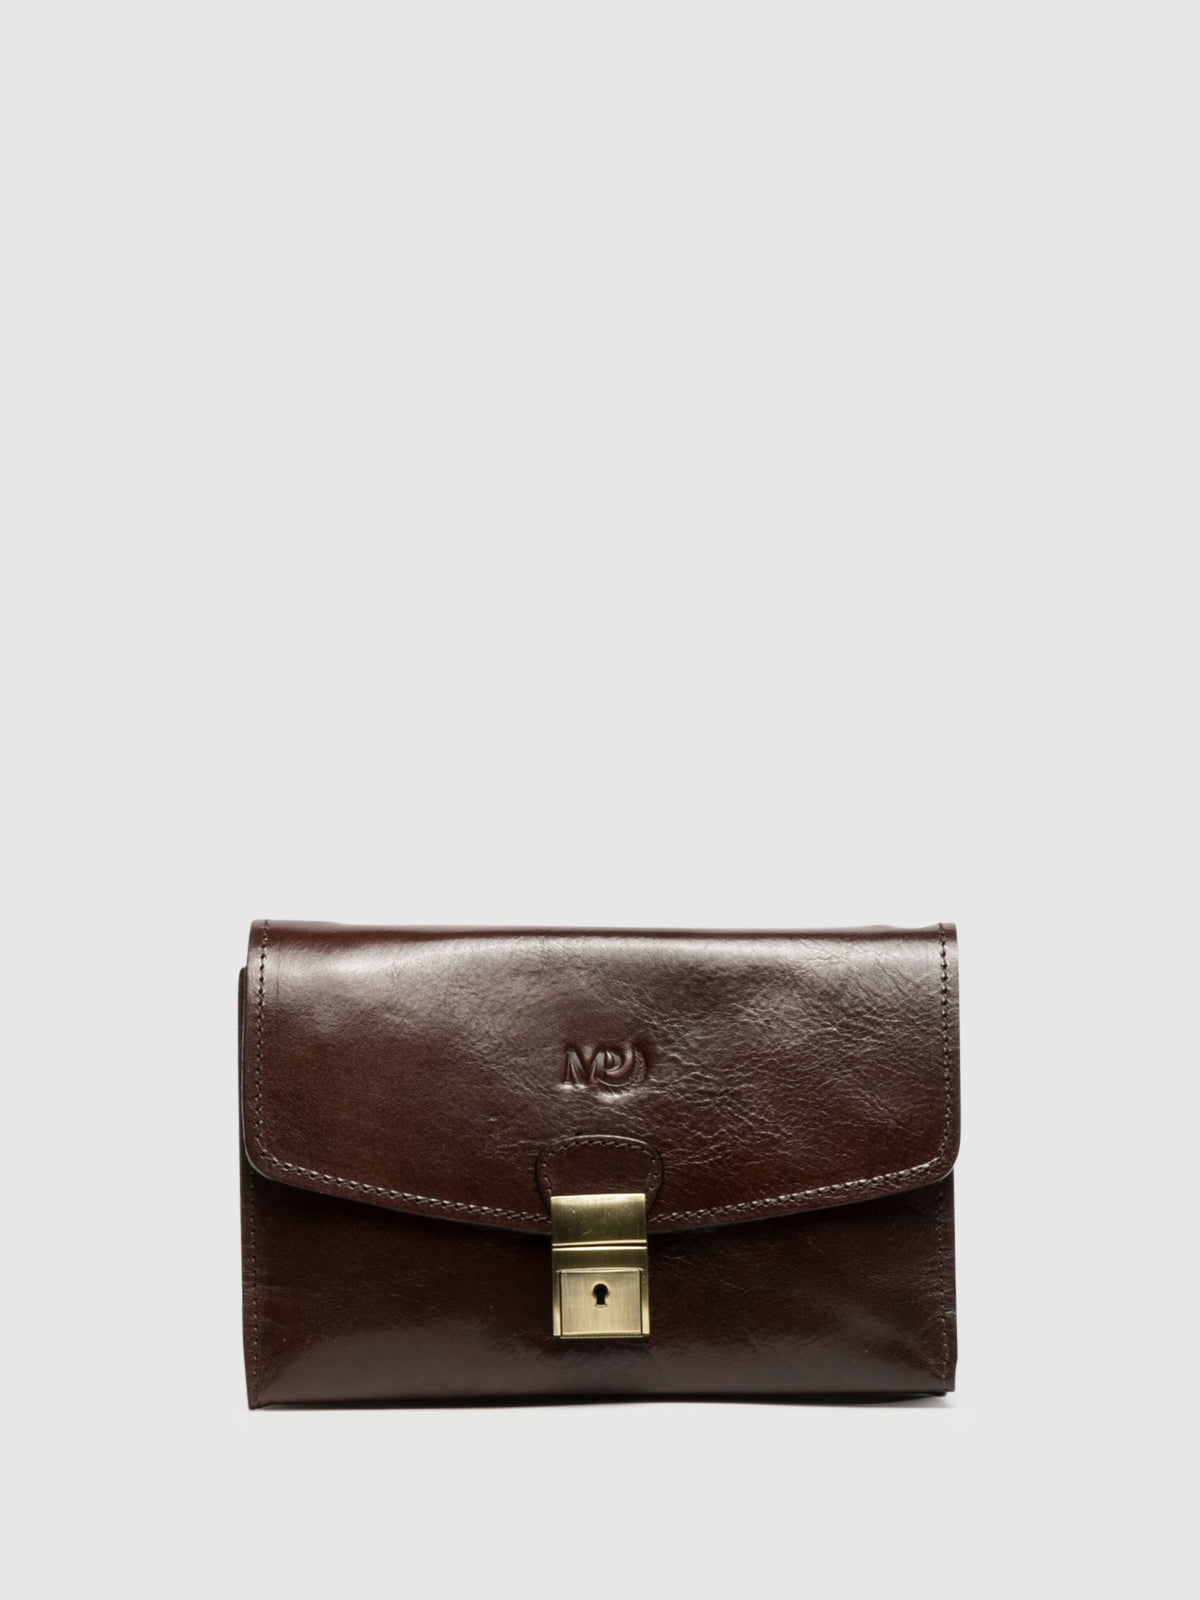 Marta Ponti Brown Handbag